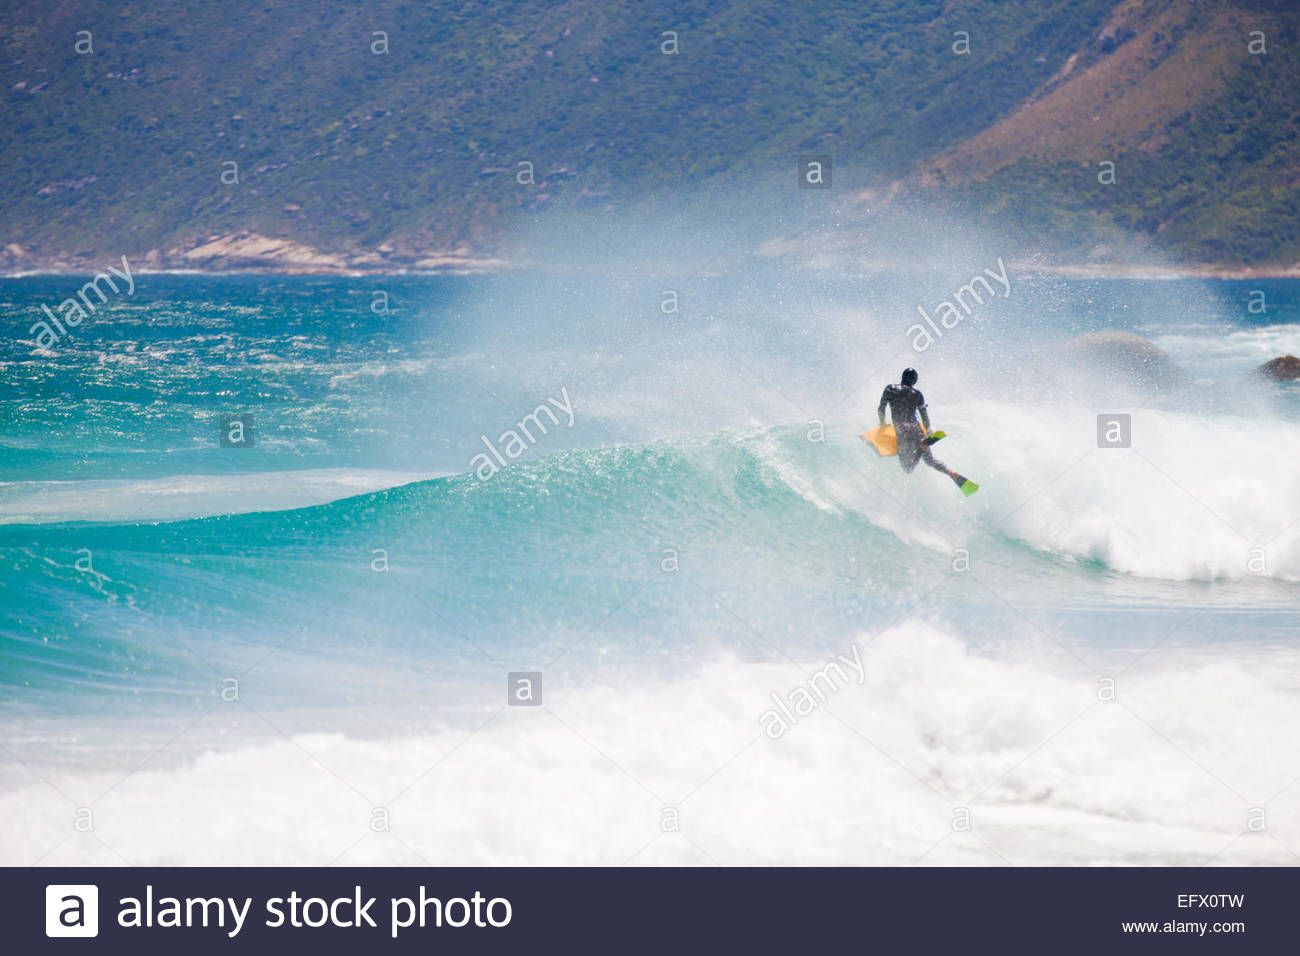 Body boarder riding wave - Stock Image